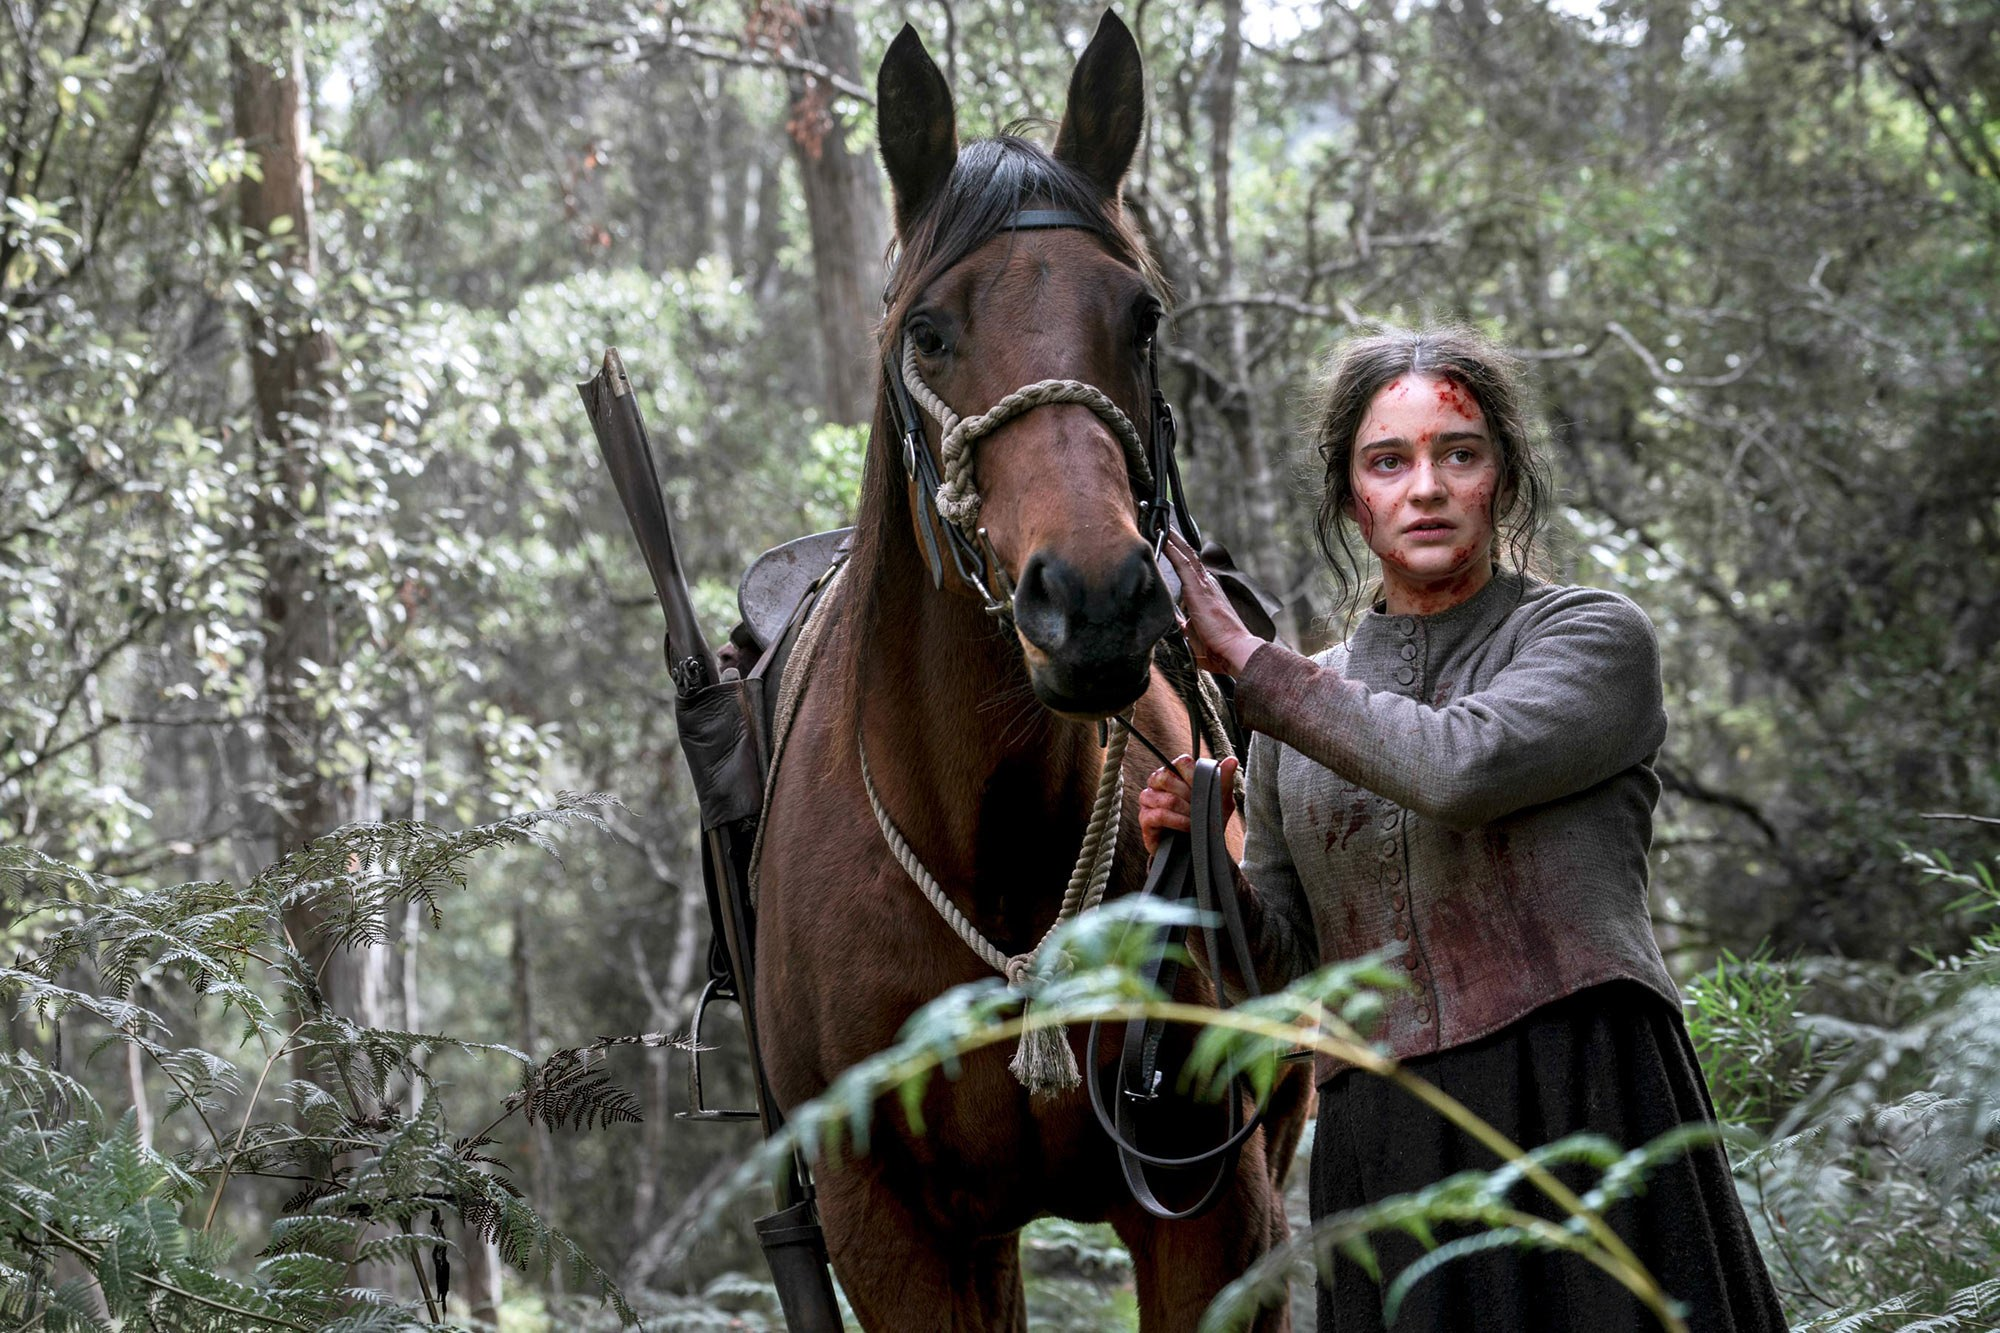 Aisling Franciosi, a white teenager with short, brown hair who's covered in blood and standing next to a brown horse, plays Clare in The Nightingale